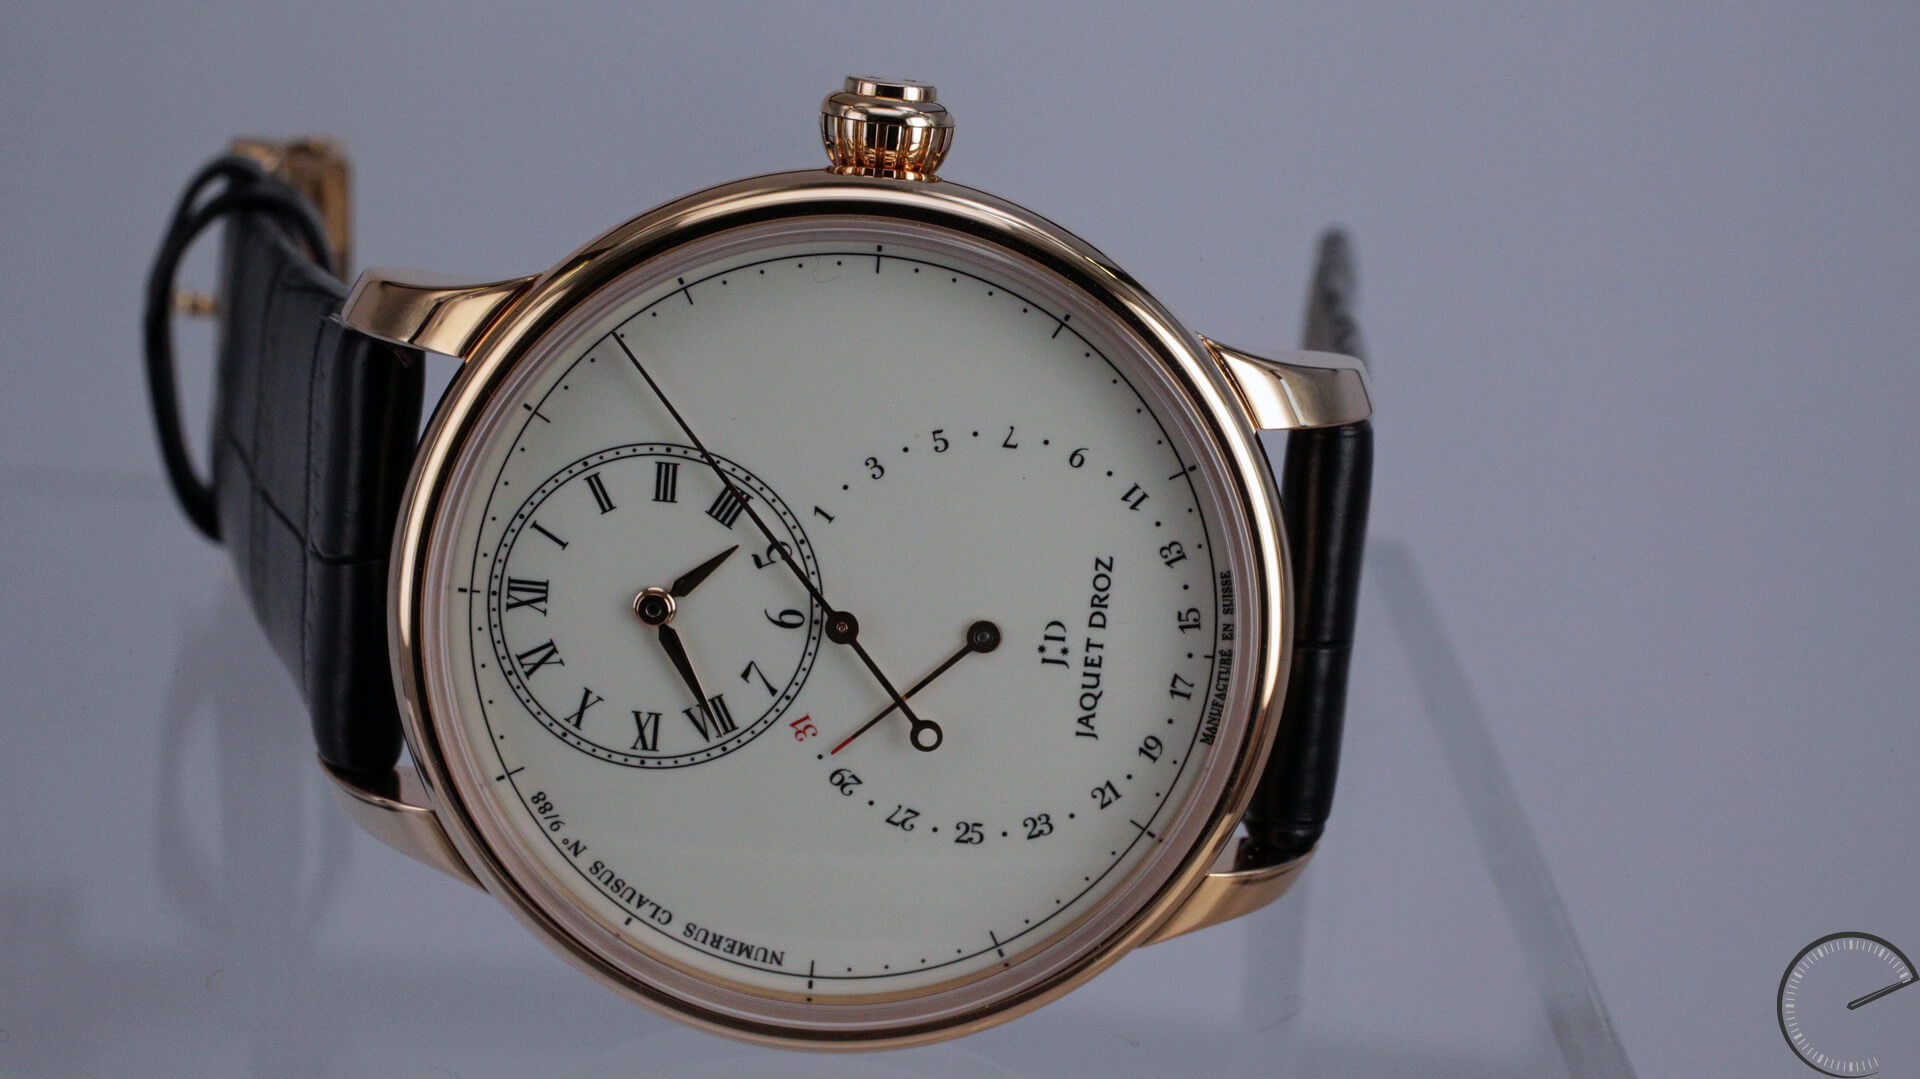 Jaquet_Droz_Grande_Seconde_Deadbeat_sideview - ESCAPEMENT watch reviews by Angus Davies